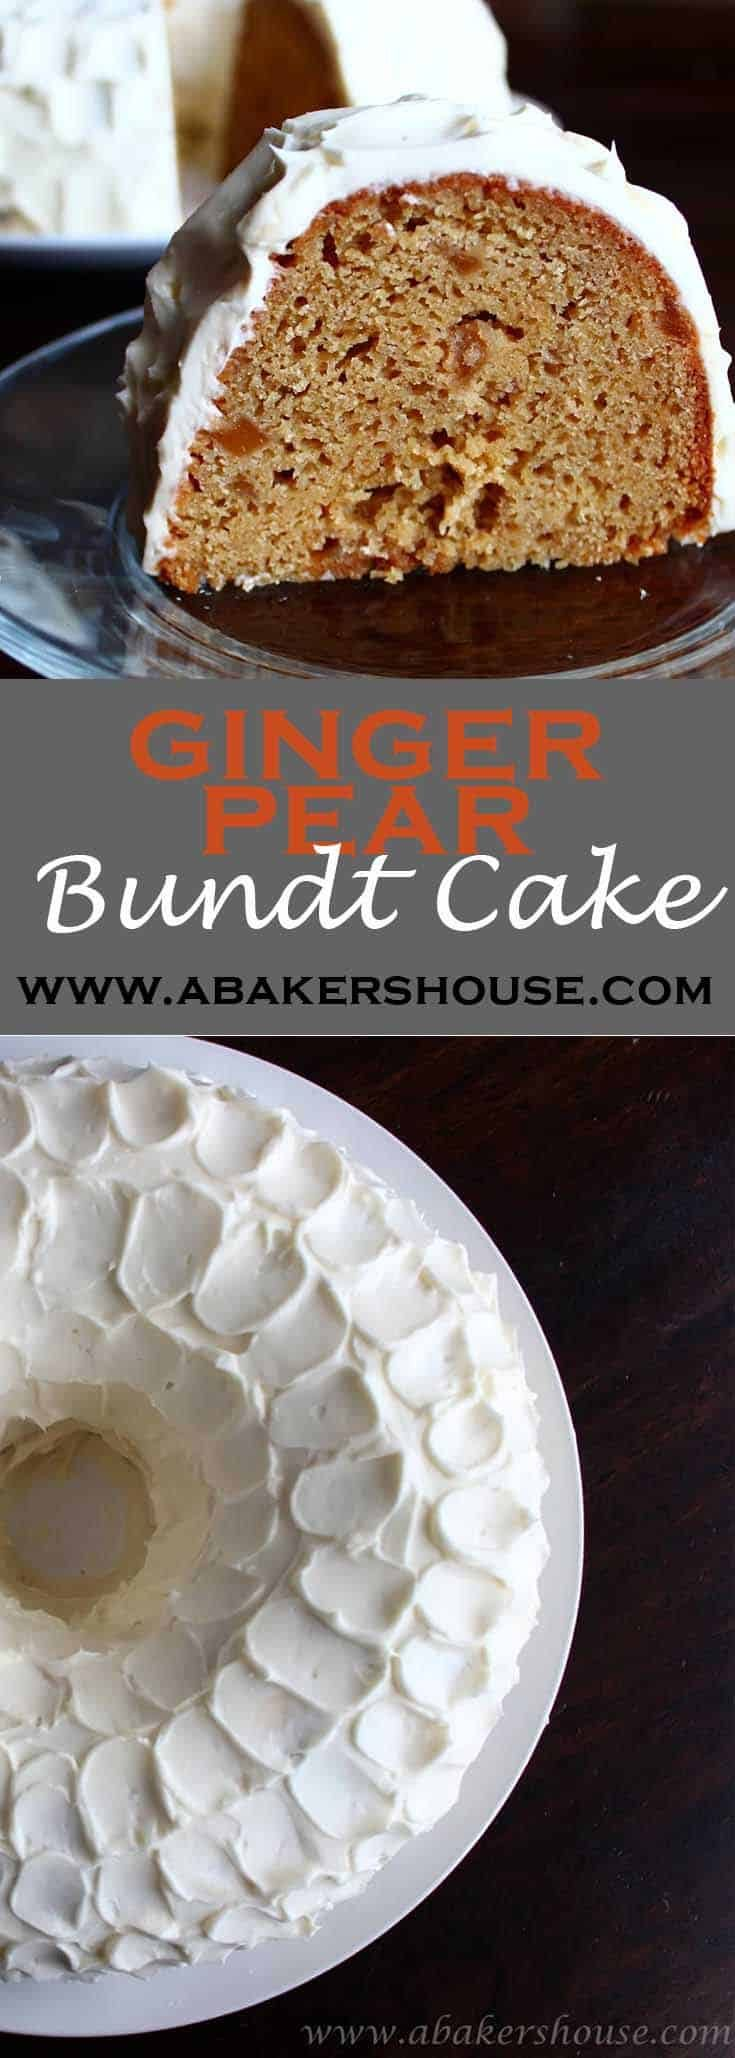 Ginger-pear Bundt cake is a seasonal treat perfect for Thanksgiving or to enjoy throughout the autumn. A Bundt cake topped with cream cheese icing is always a hit. #abakershouse #bundt #cake #ginger #pear #thanksgiving #christmas #cake #dessert